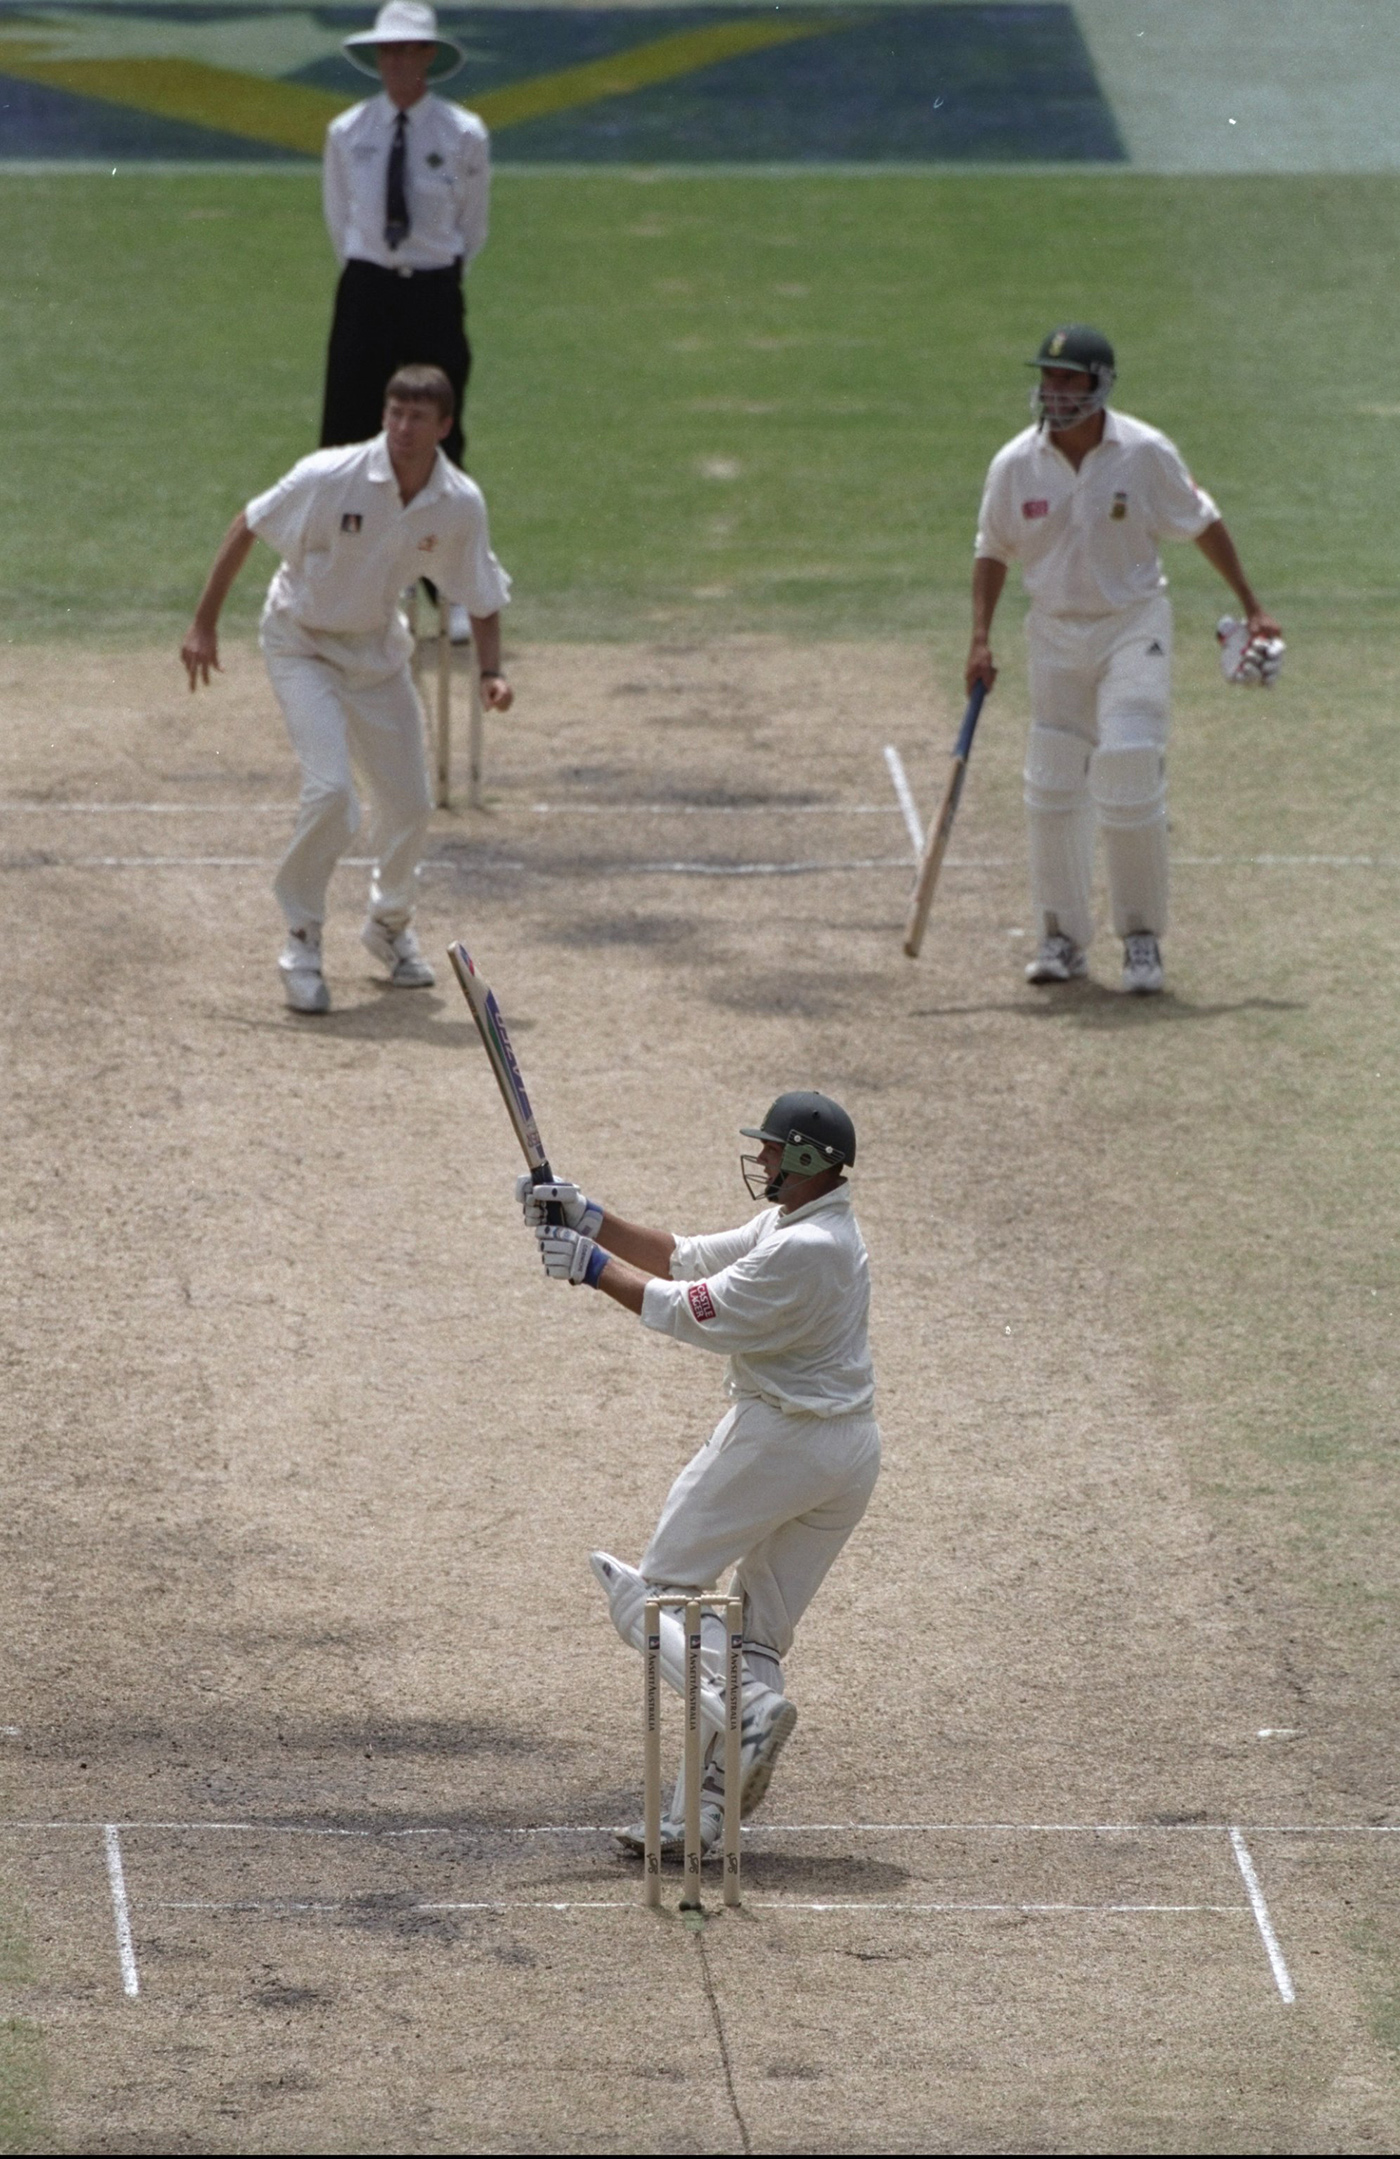 The battler: Kallis batted nearly six hours, making 101 and adding 123 with Hansie Cronje, to draw the Melbourne Test in 1997-98